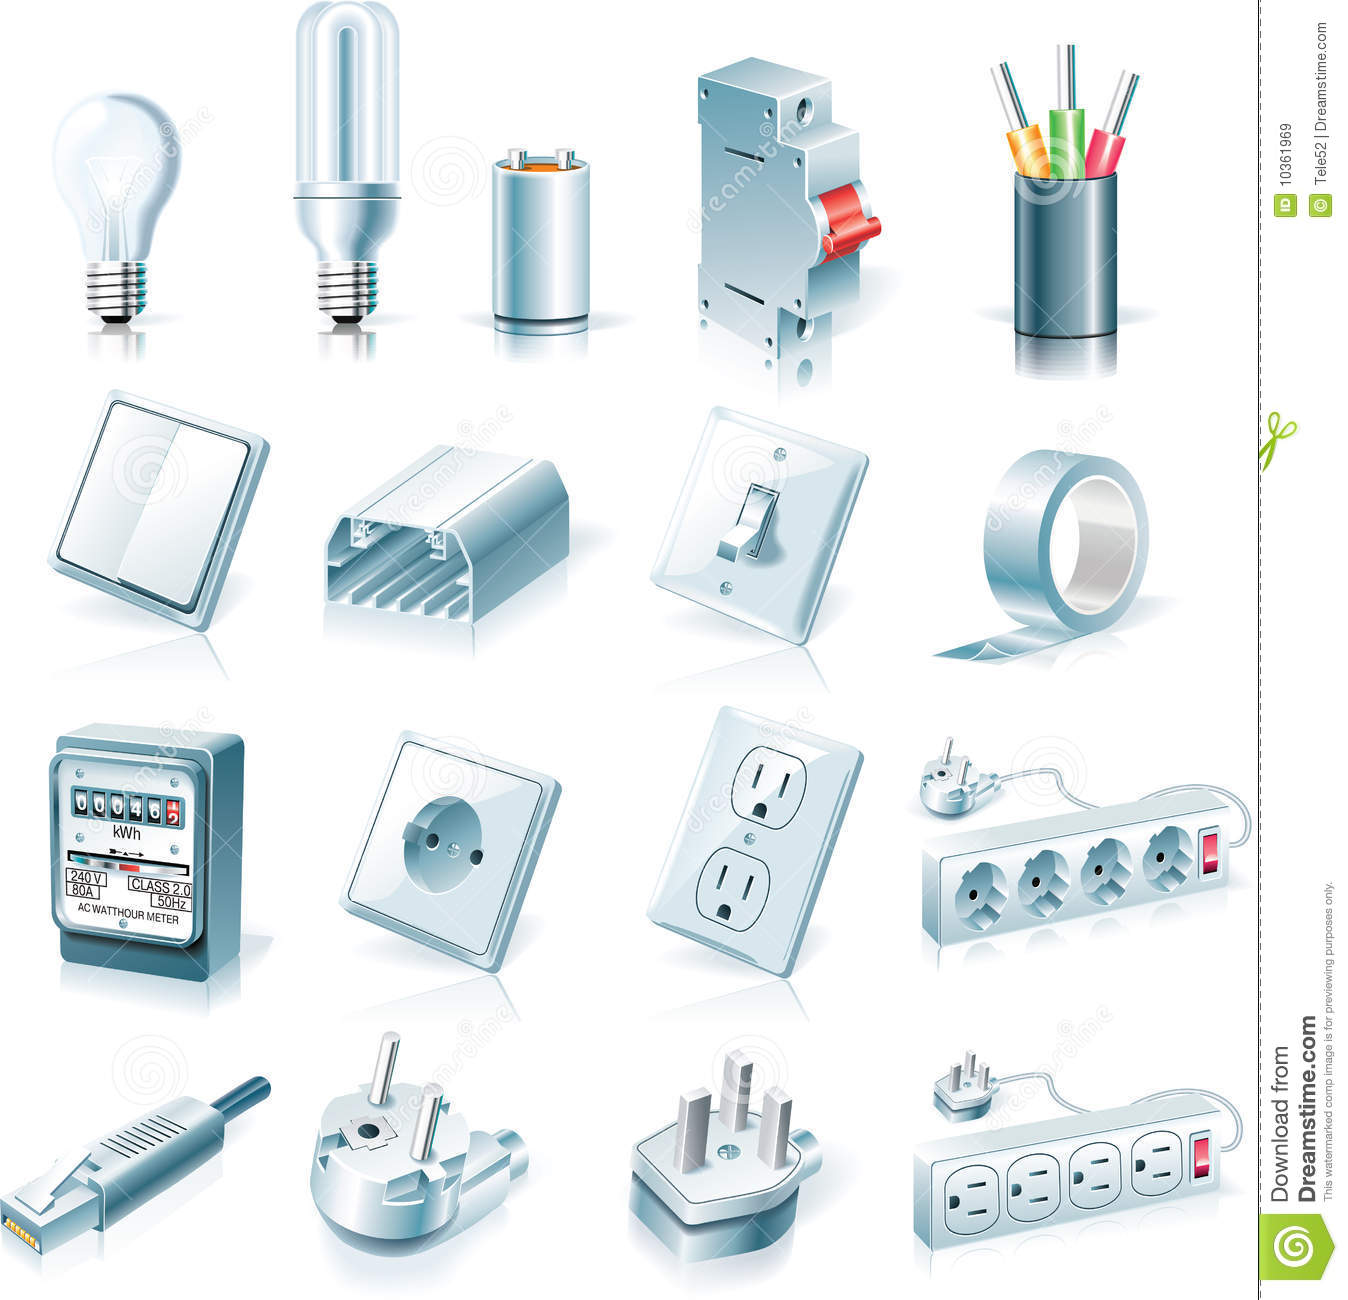 Online electrical items shopping